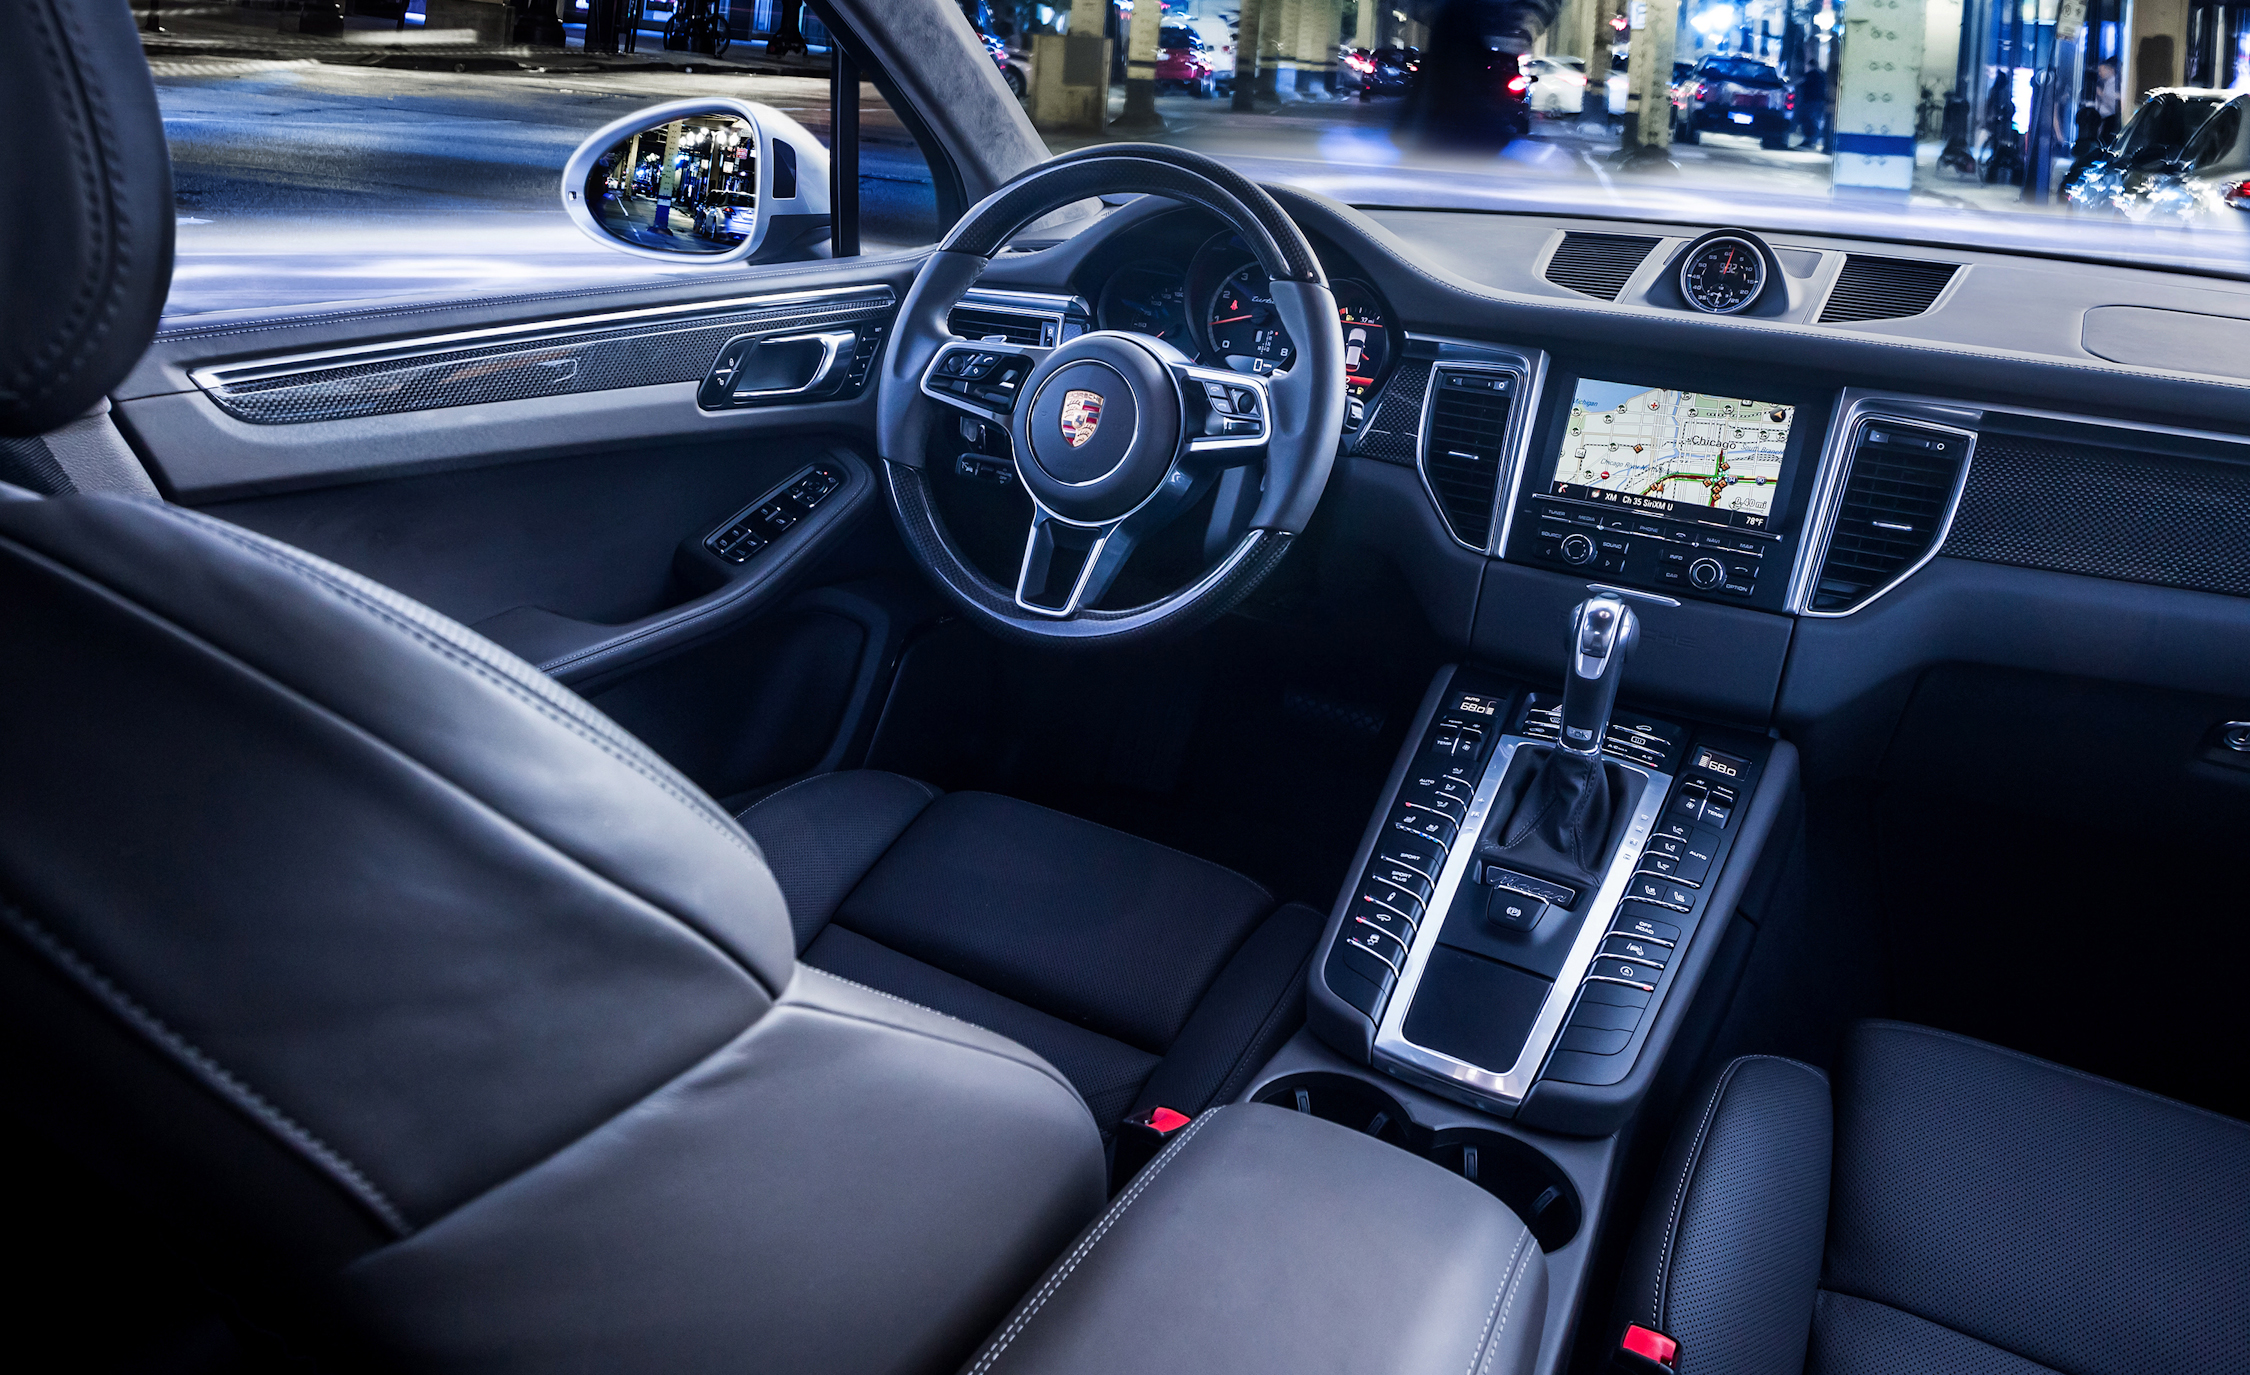 2015 Porsche Macan Turbo Interior (View 7 of 20)